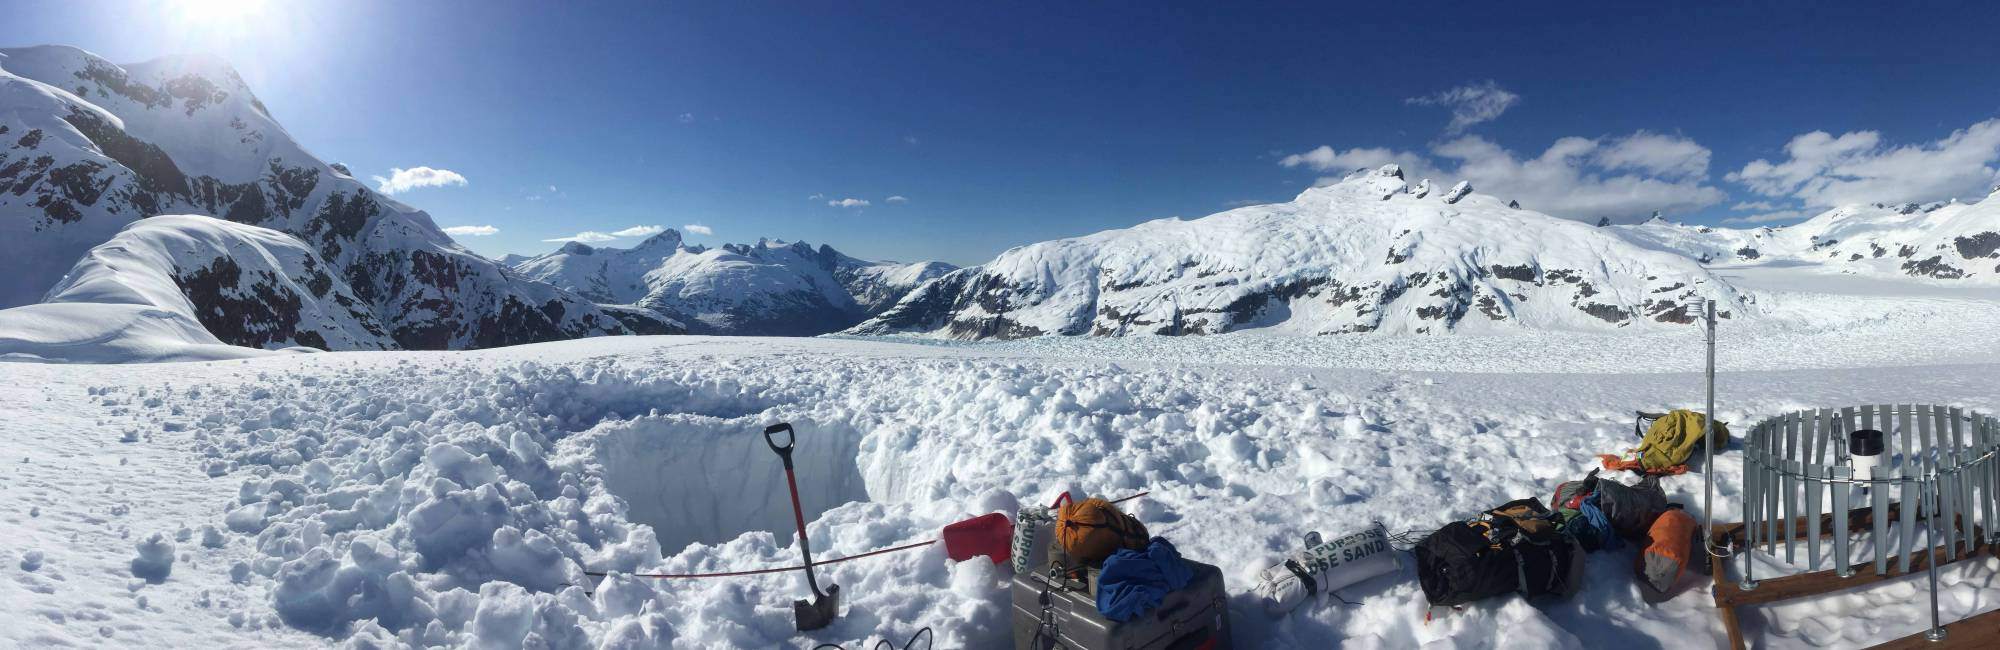 instruments in snow at base of alaskan mountain and glacier